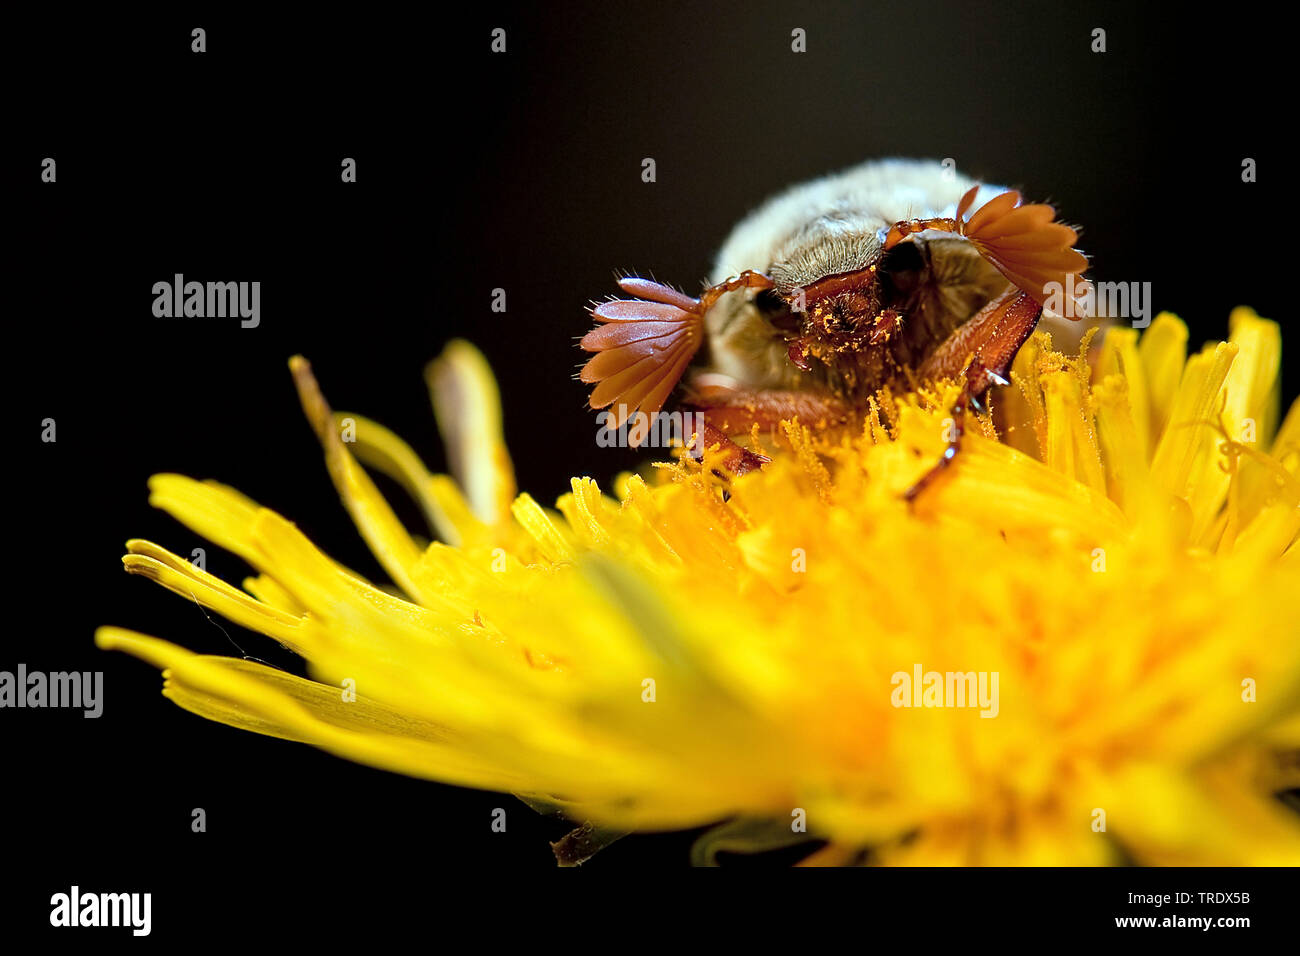 Common cockchafer, Maybug, Maybeetle (Melolontha melolontha), male on yellow blossom, front view, Netherlands, Overijssel Stock Photo